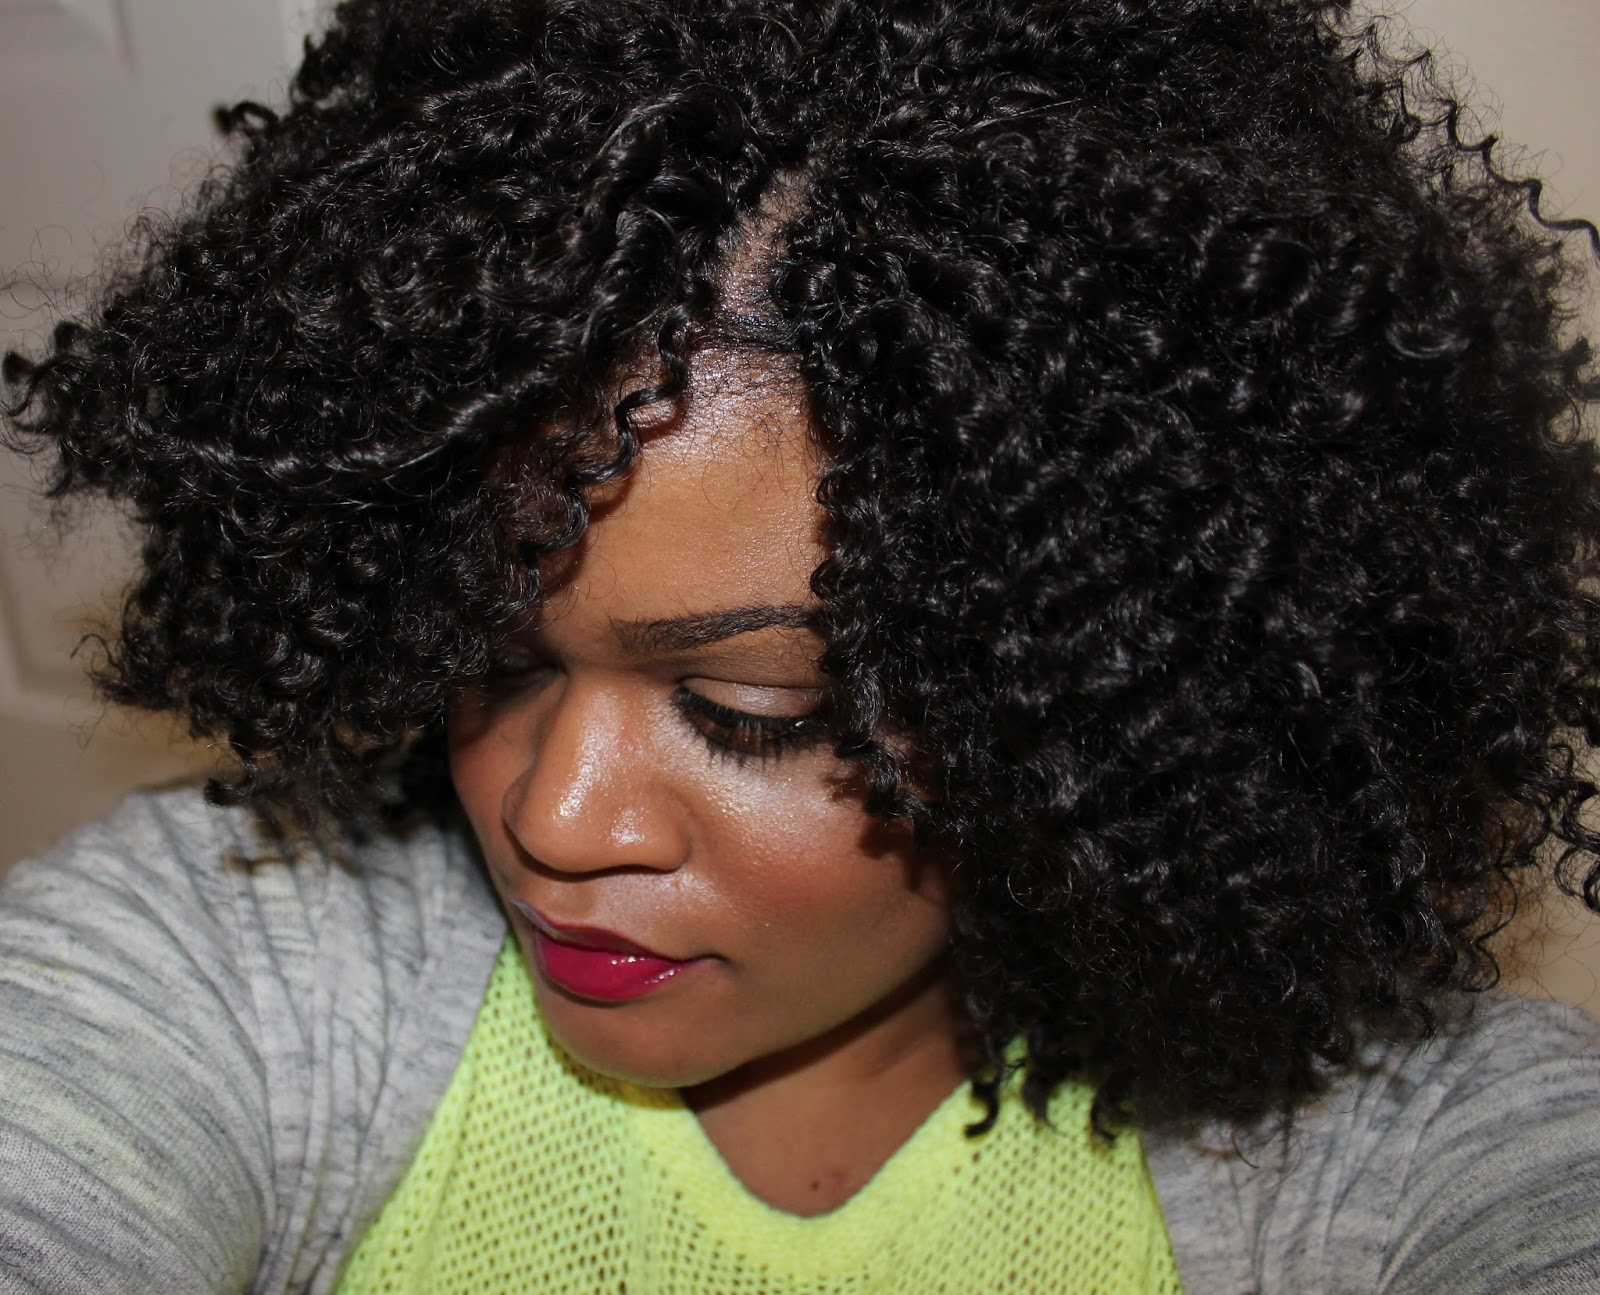 Crochet Hair Twists : FabEllis: Natural Hair What Are Crochet Braids?